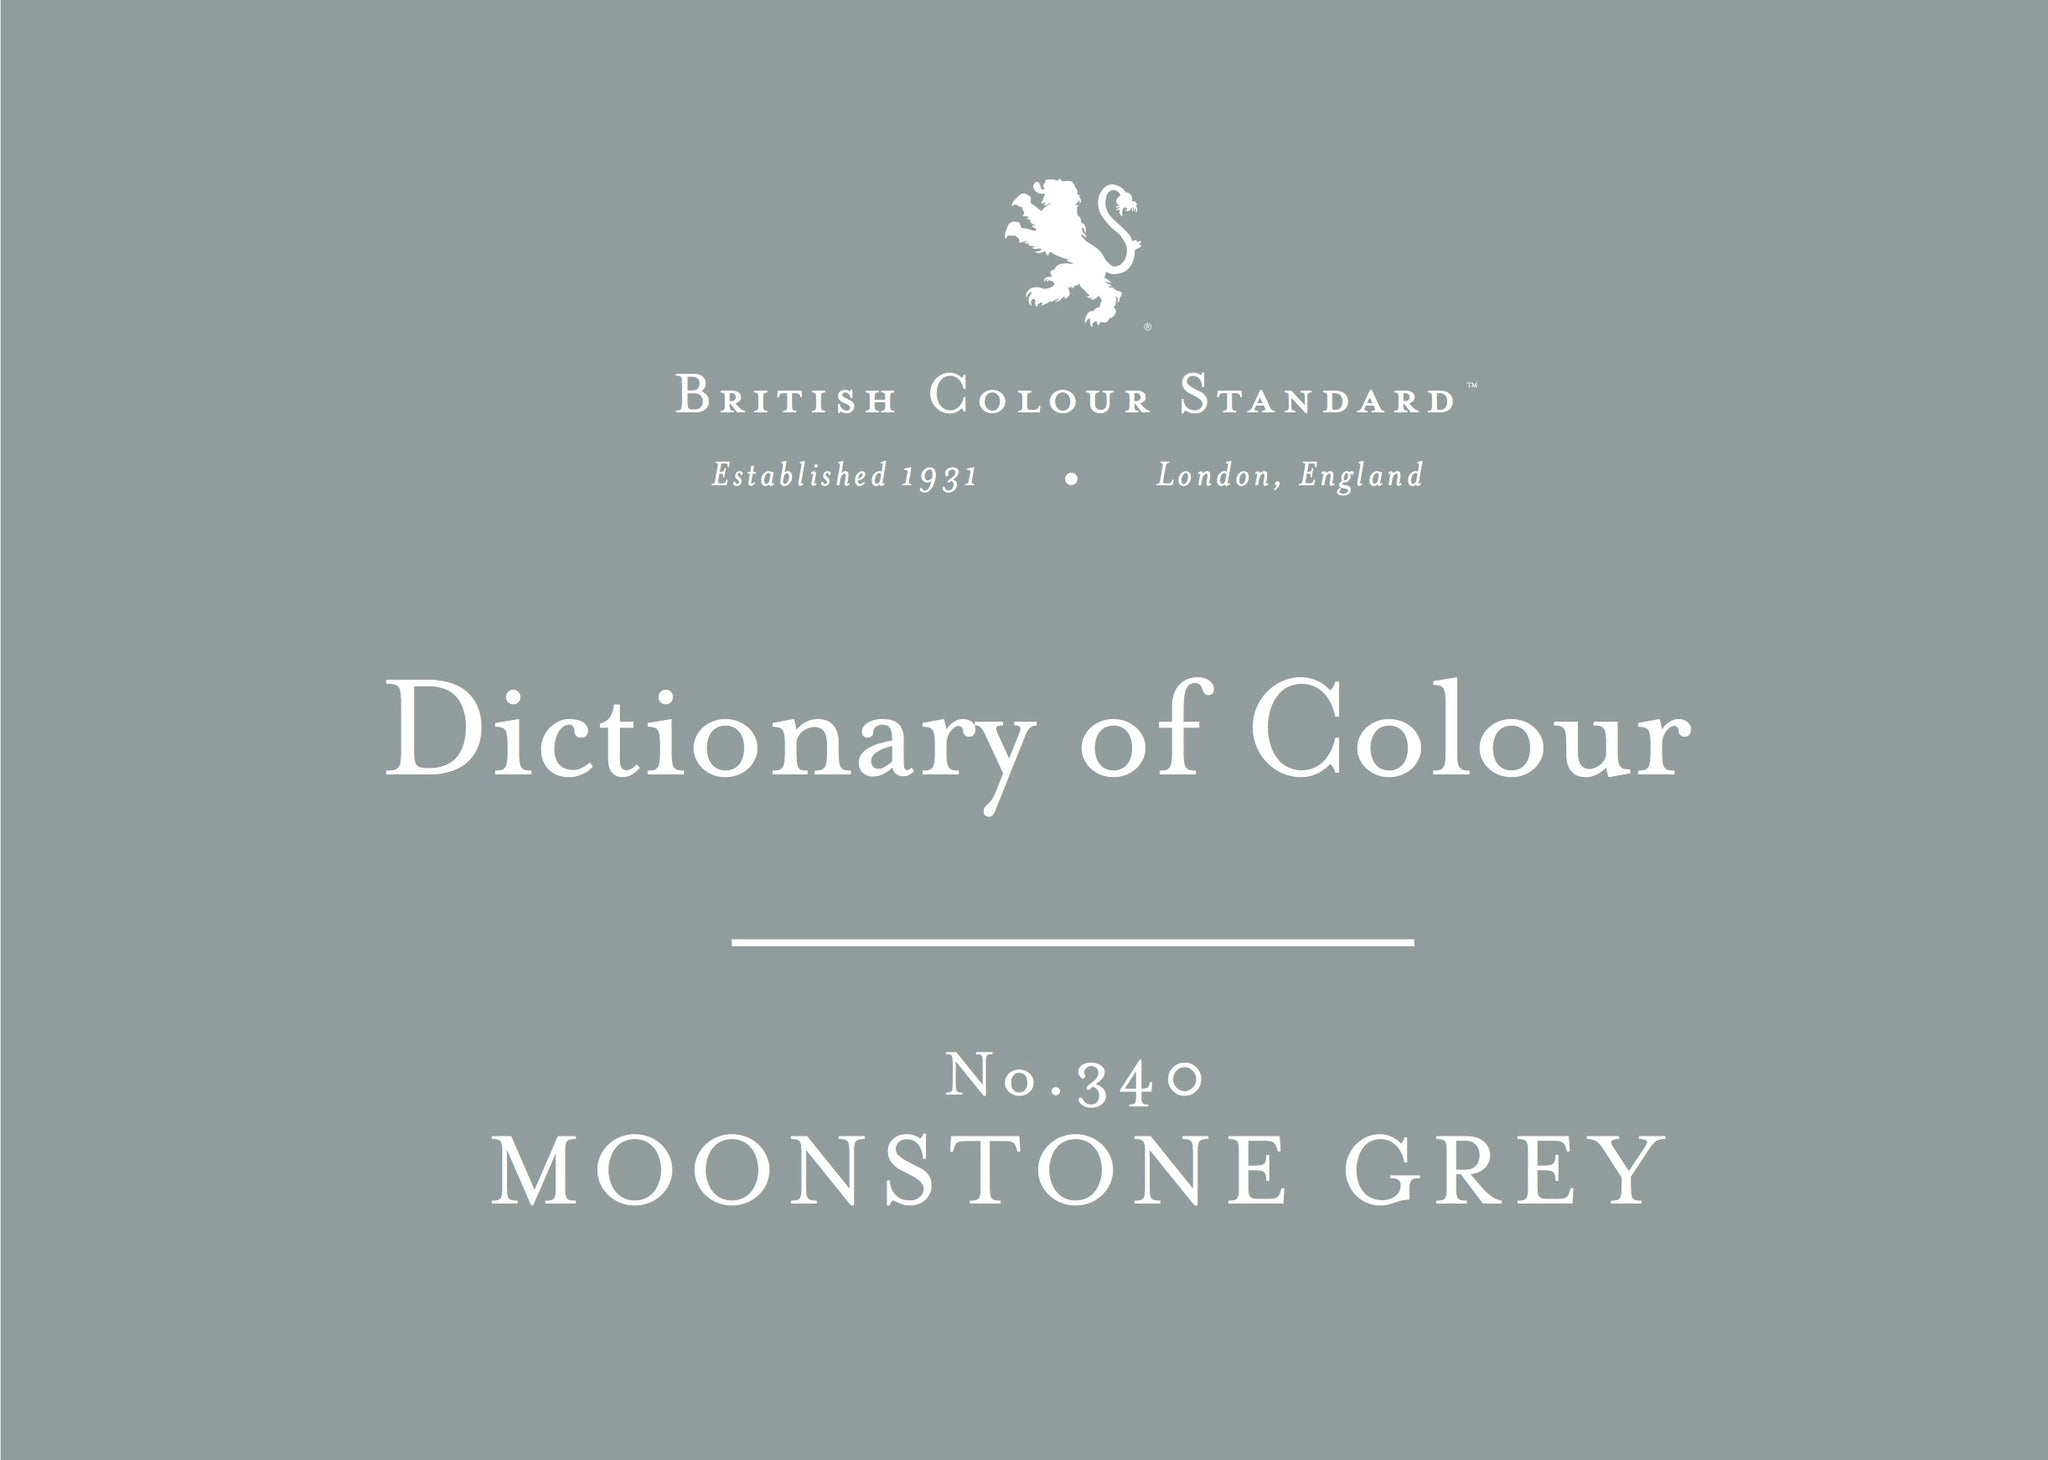 BRITISH COLOUR STANDARD - Moonstone Grey No. 340